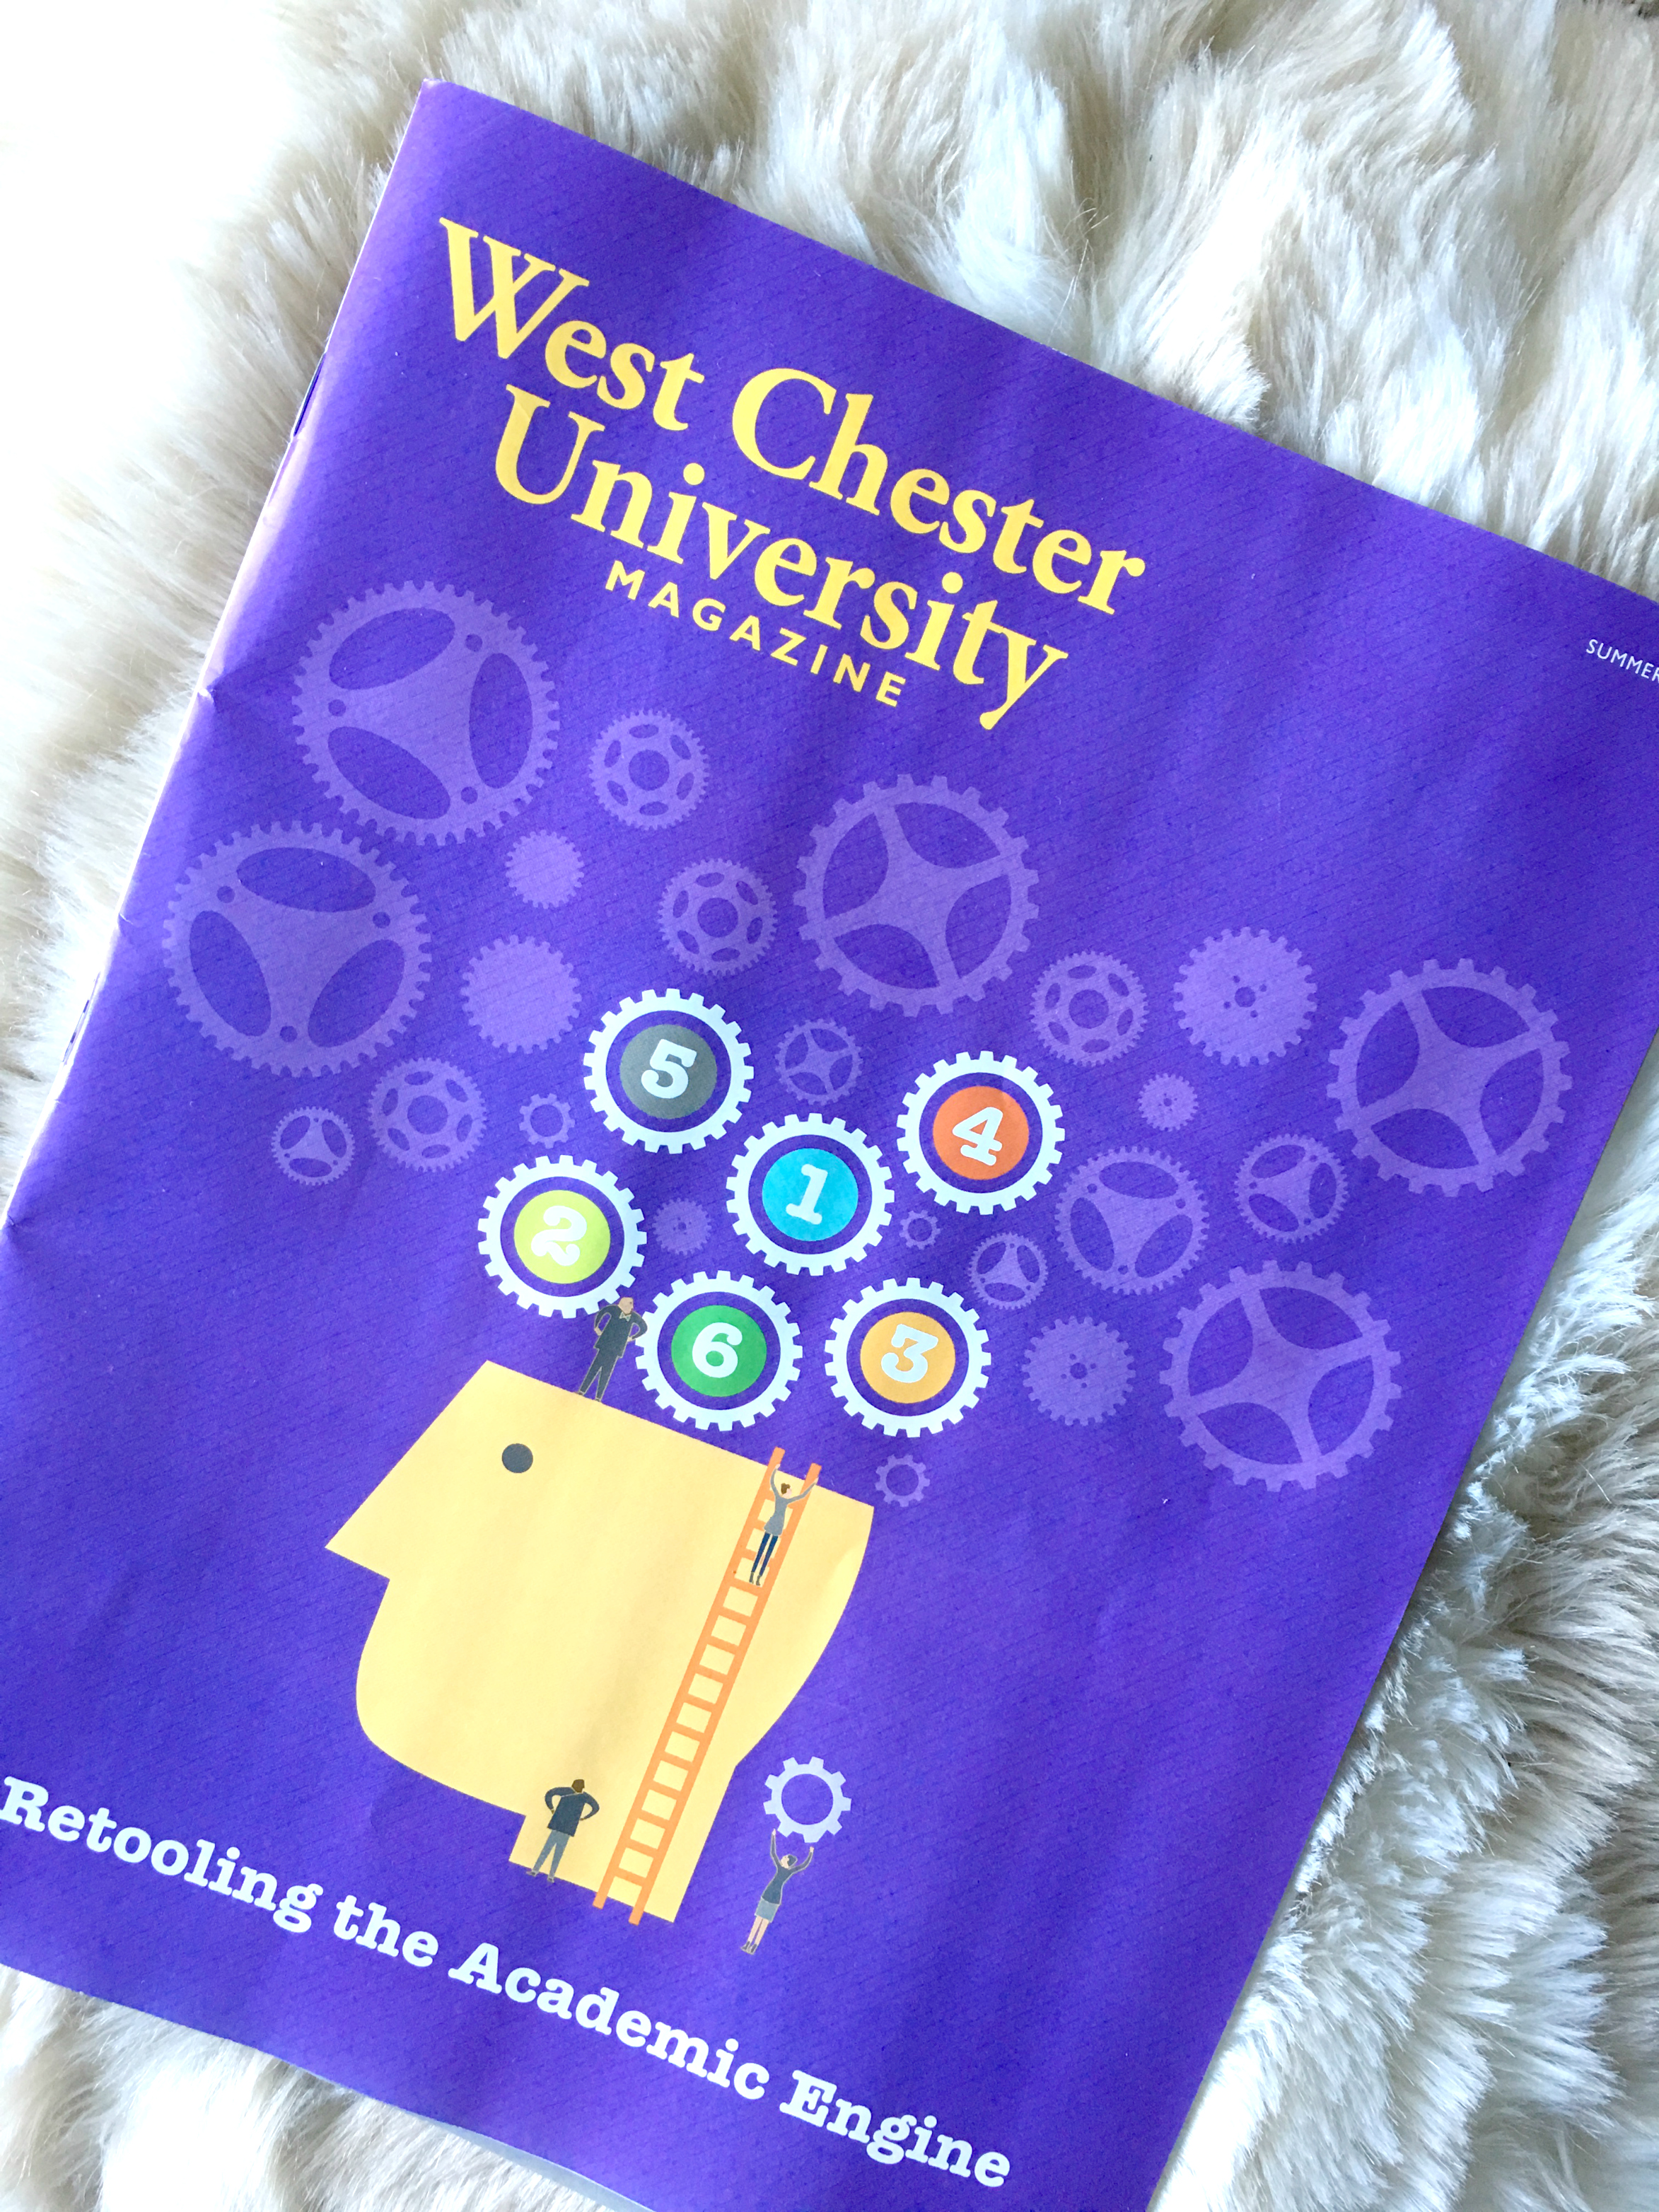 west chester university magazine